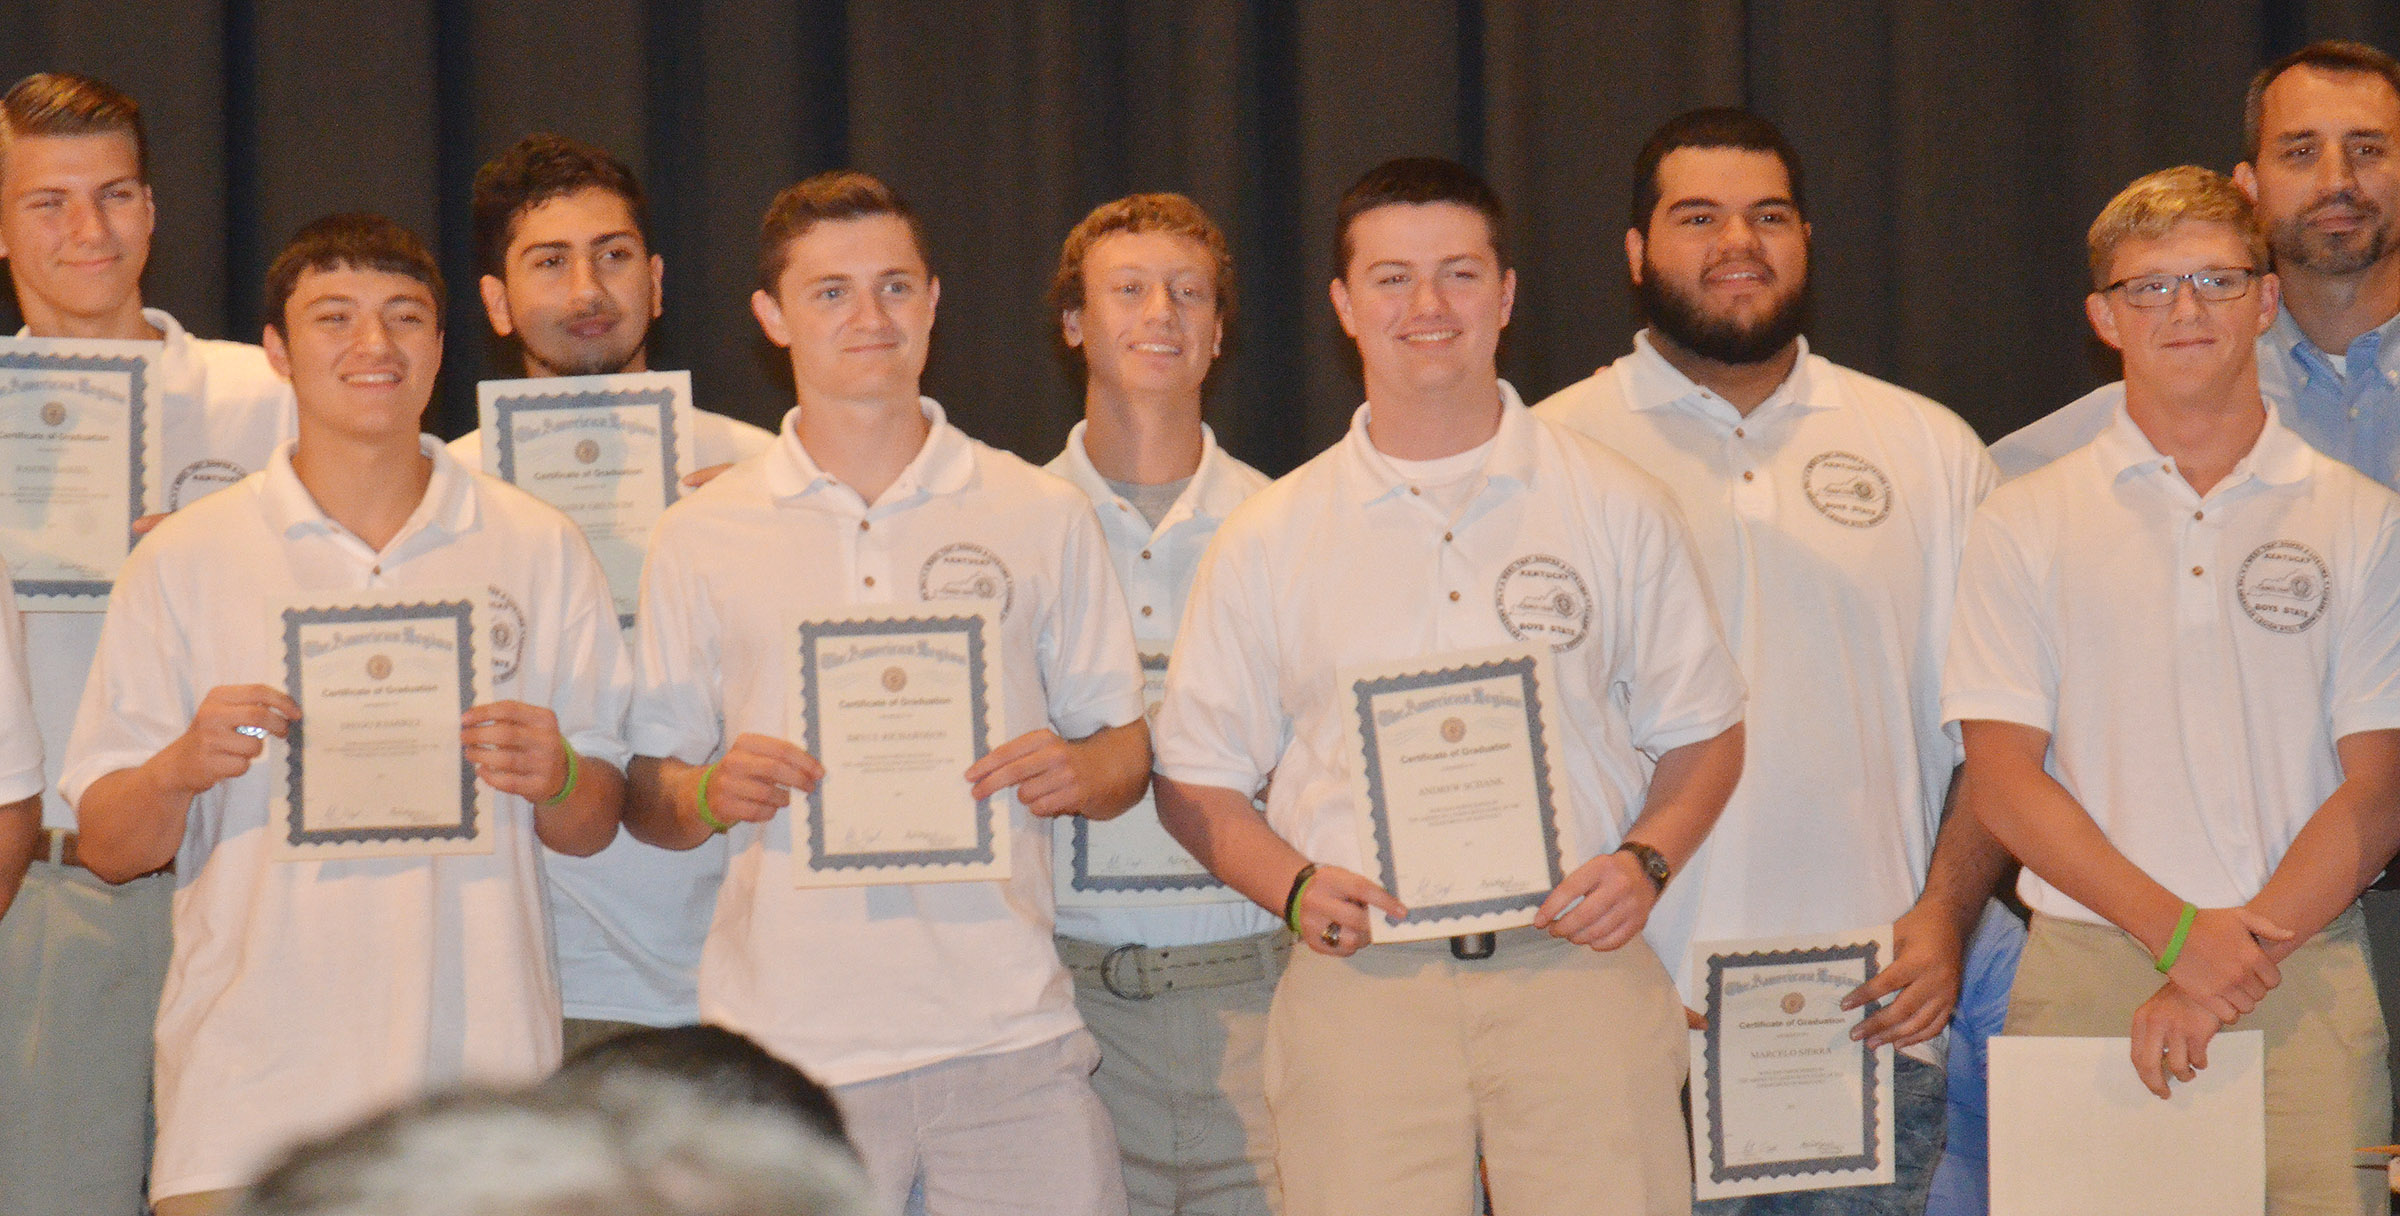 CHS senior Bryce Richardson, front, second from left, is honored at the Boys State graduation ceremony.